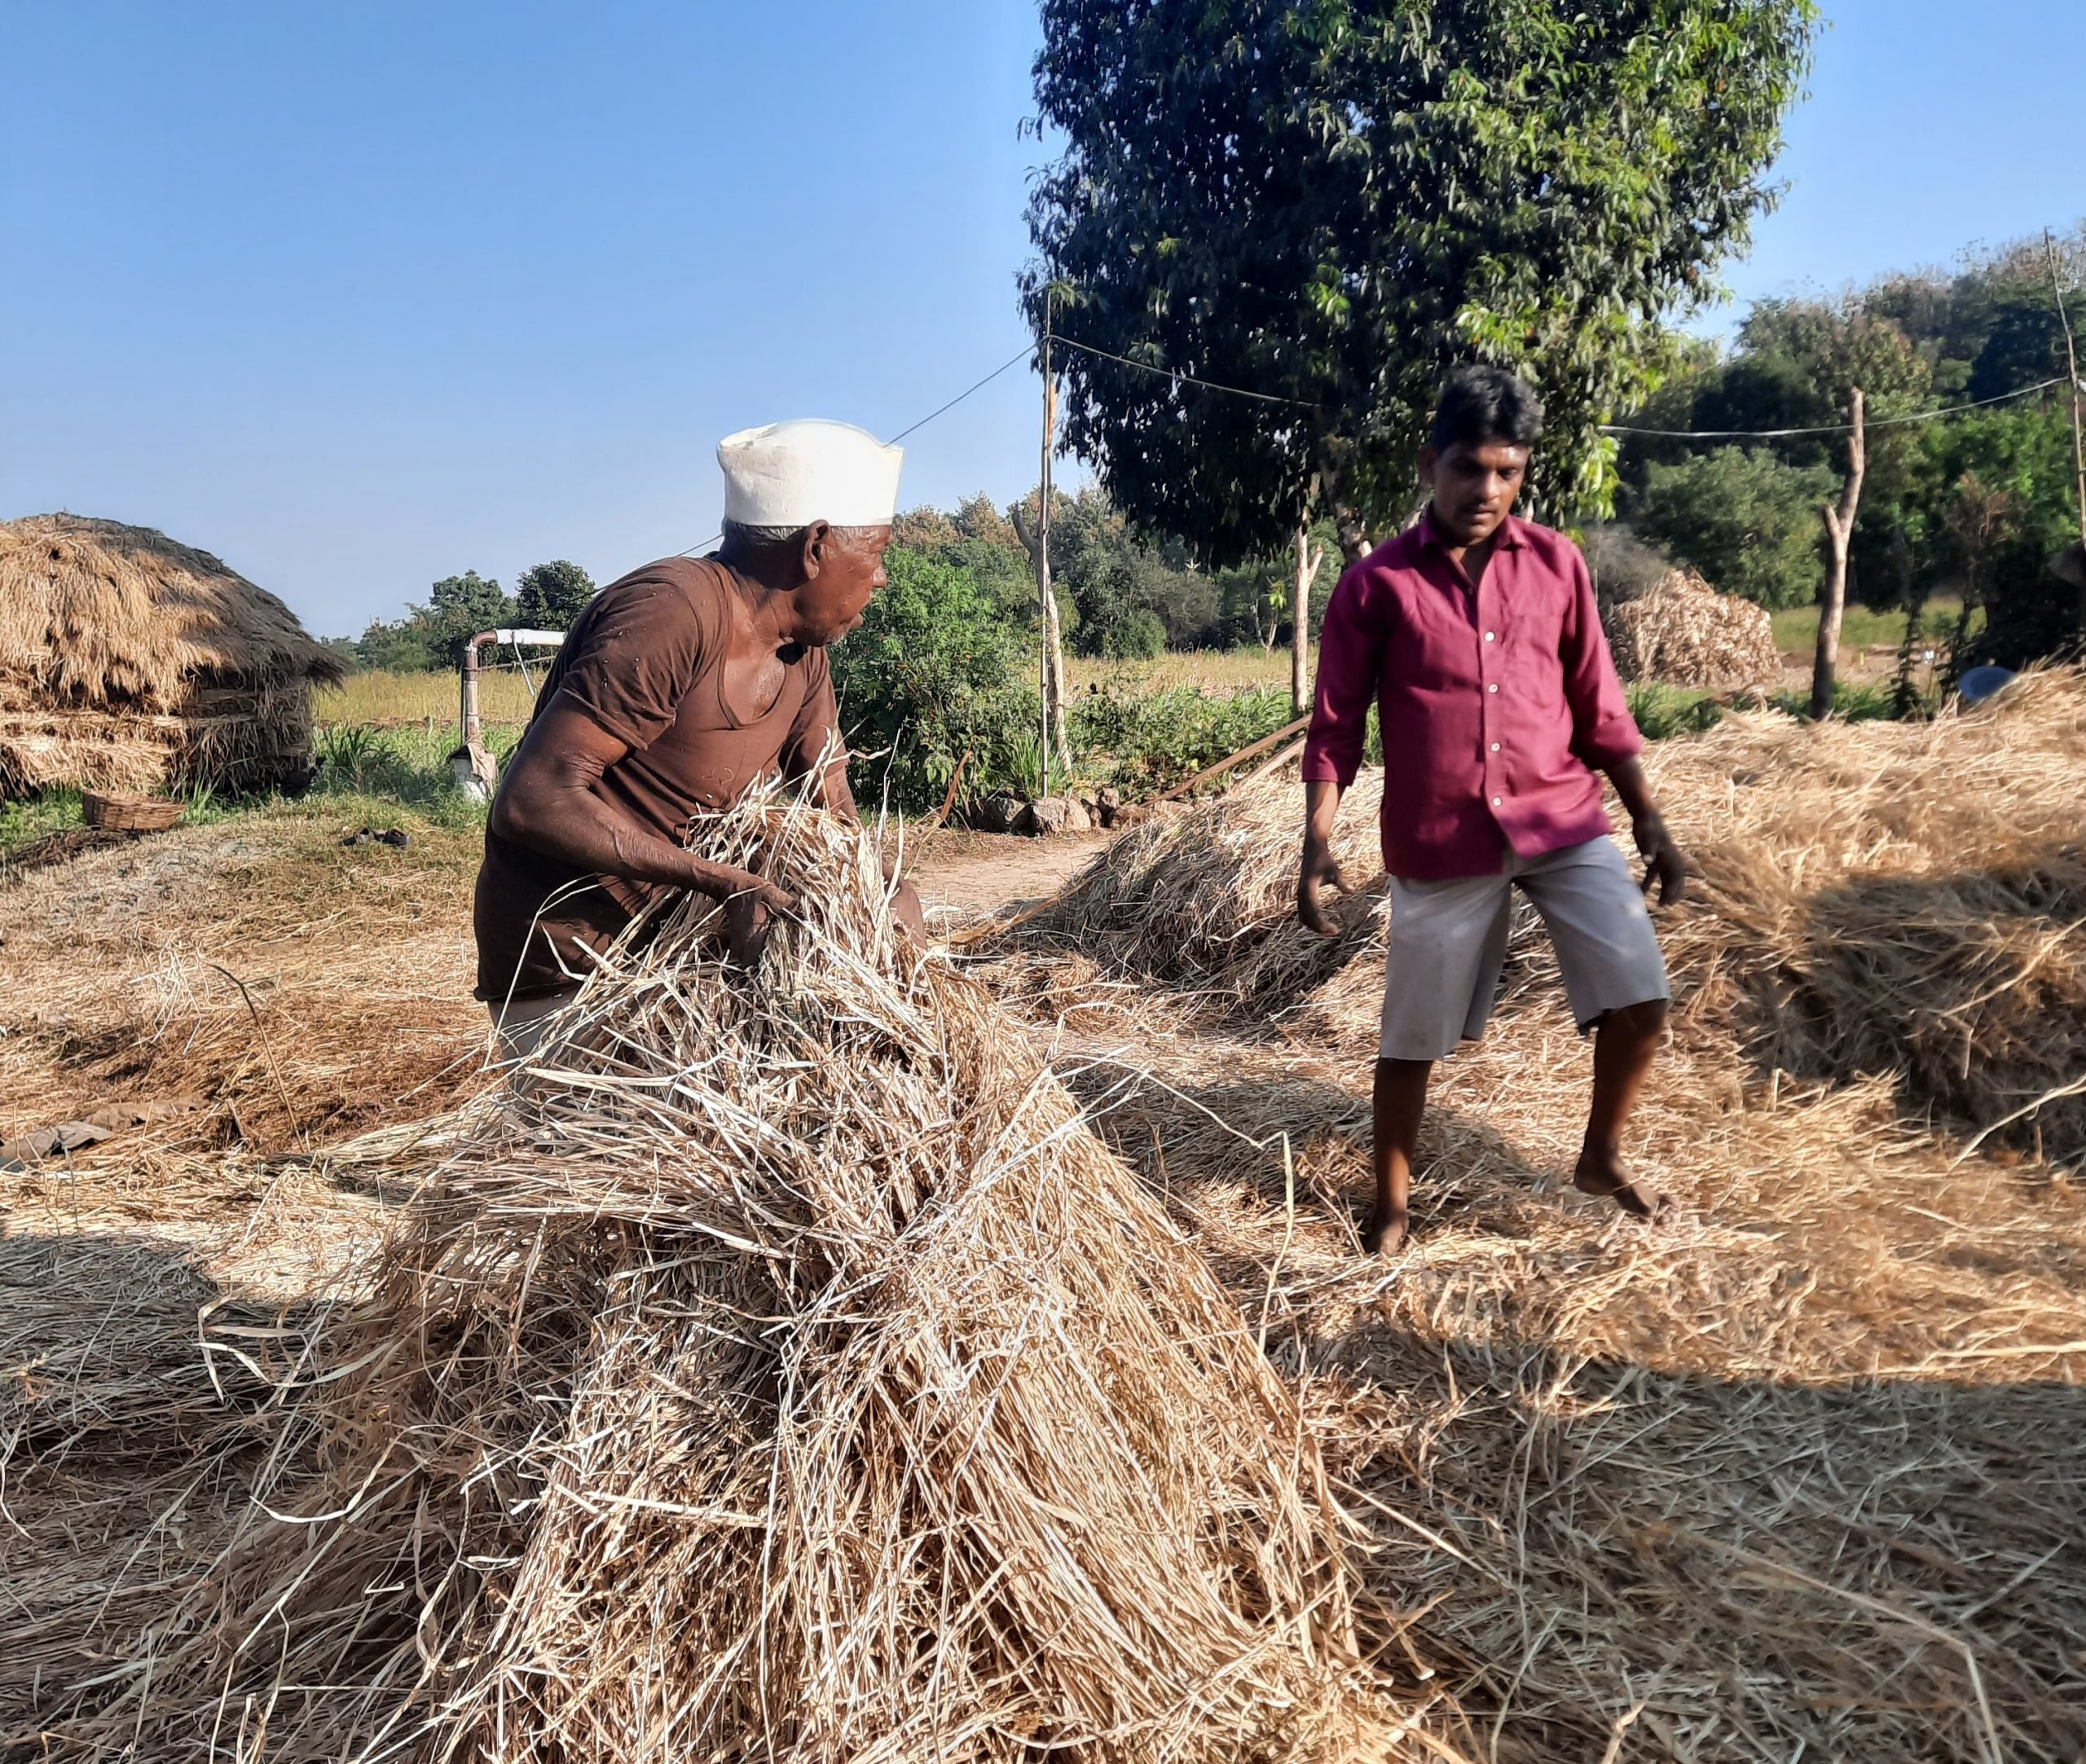 Farmers and dry grass